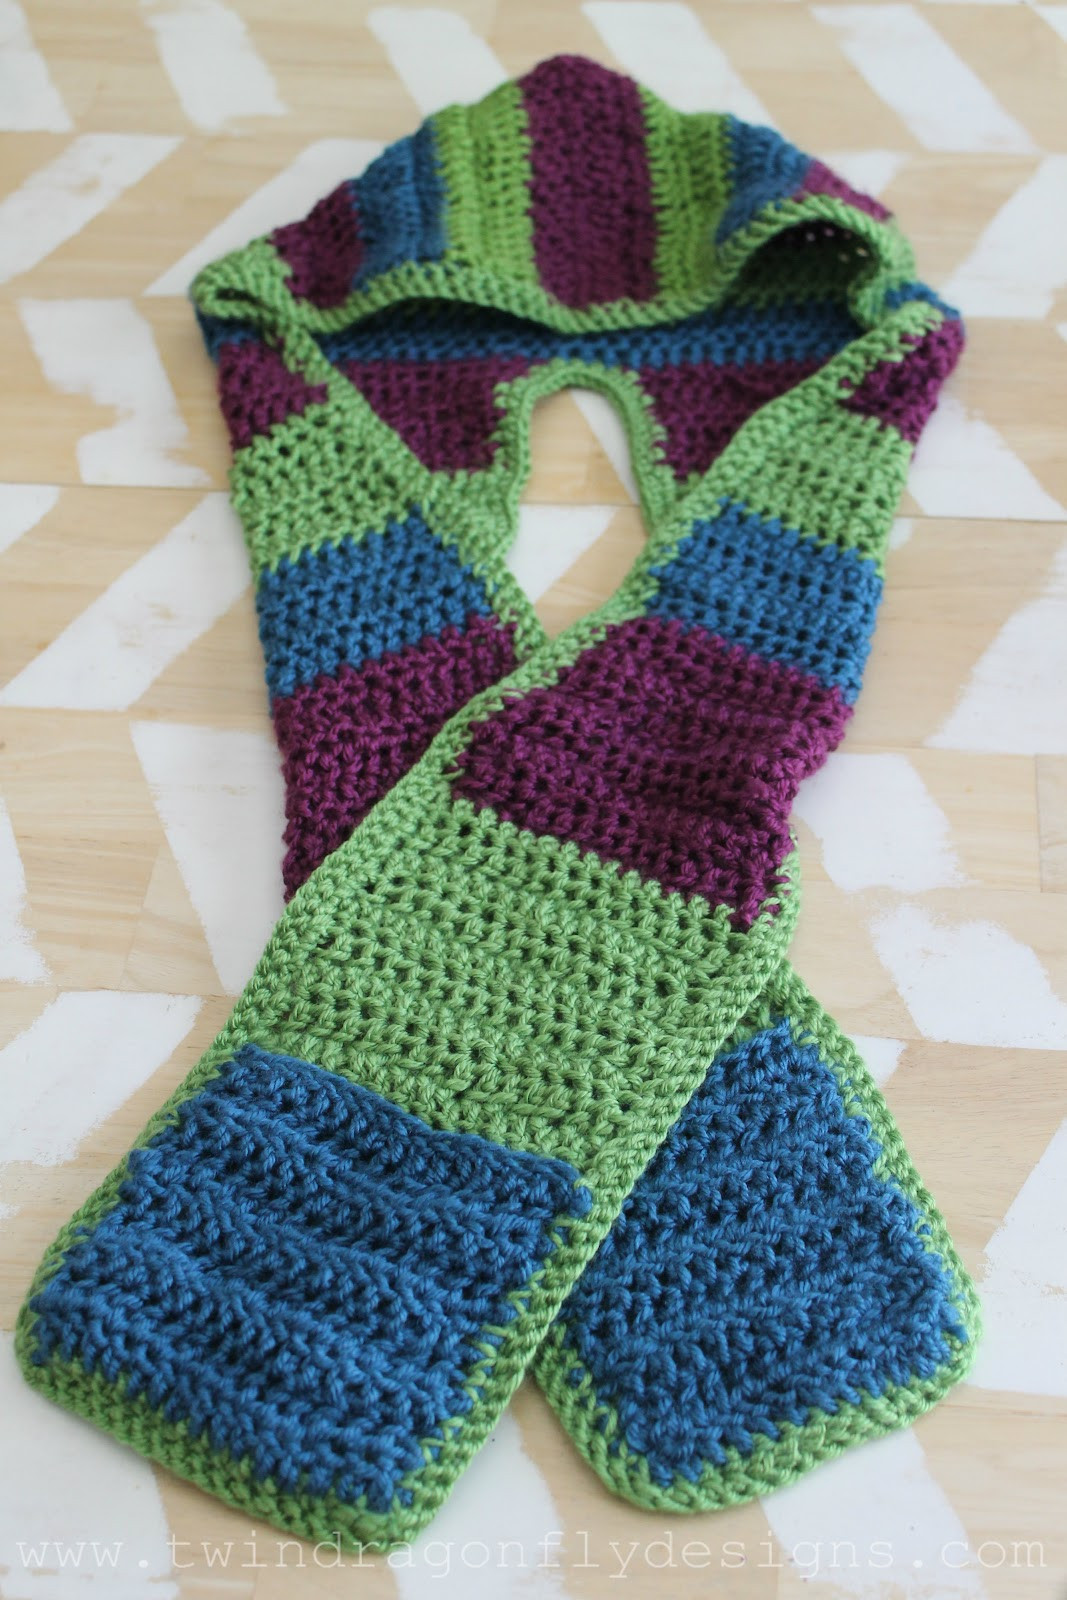 Crochet Scarf Awesome Crochet Hooded Scarf Pattern Dragonfly Designs Of Incredible 48 Images Crochet Scarf